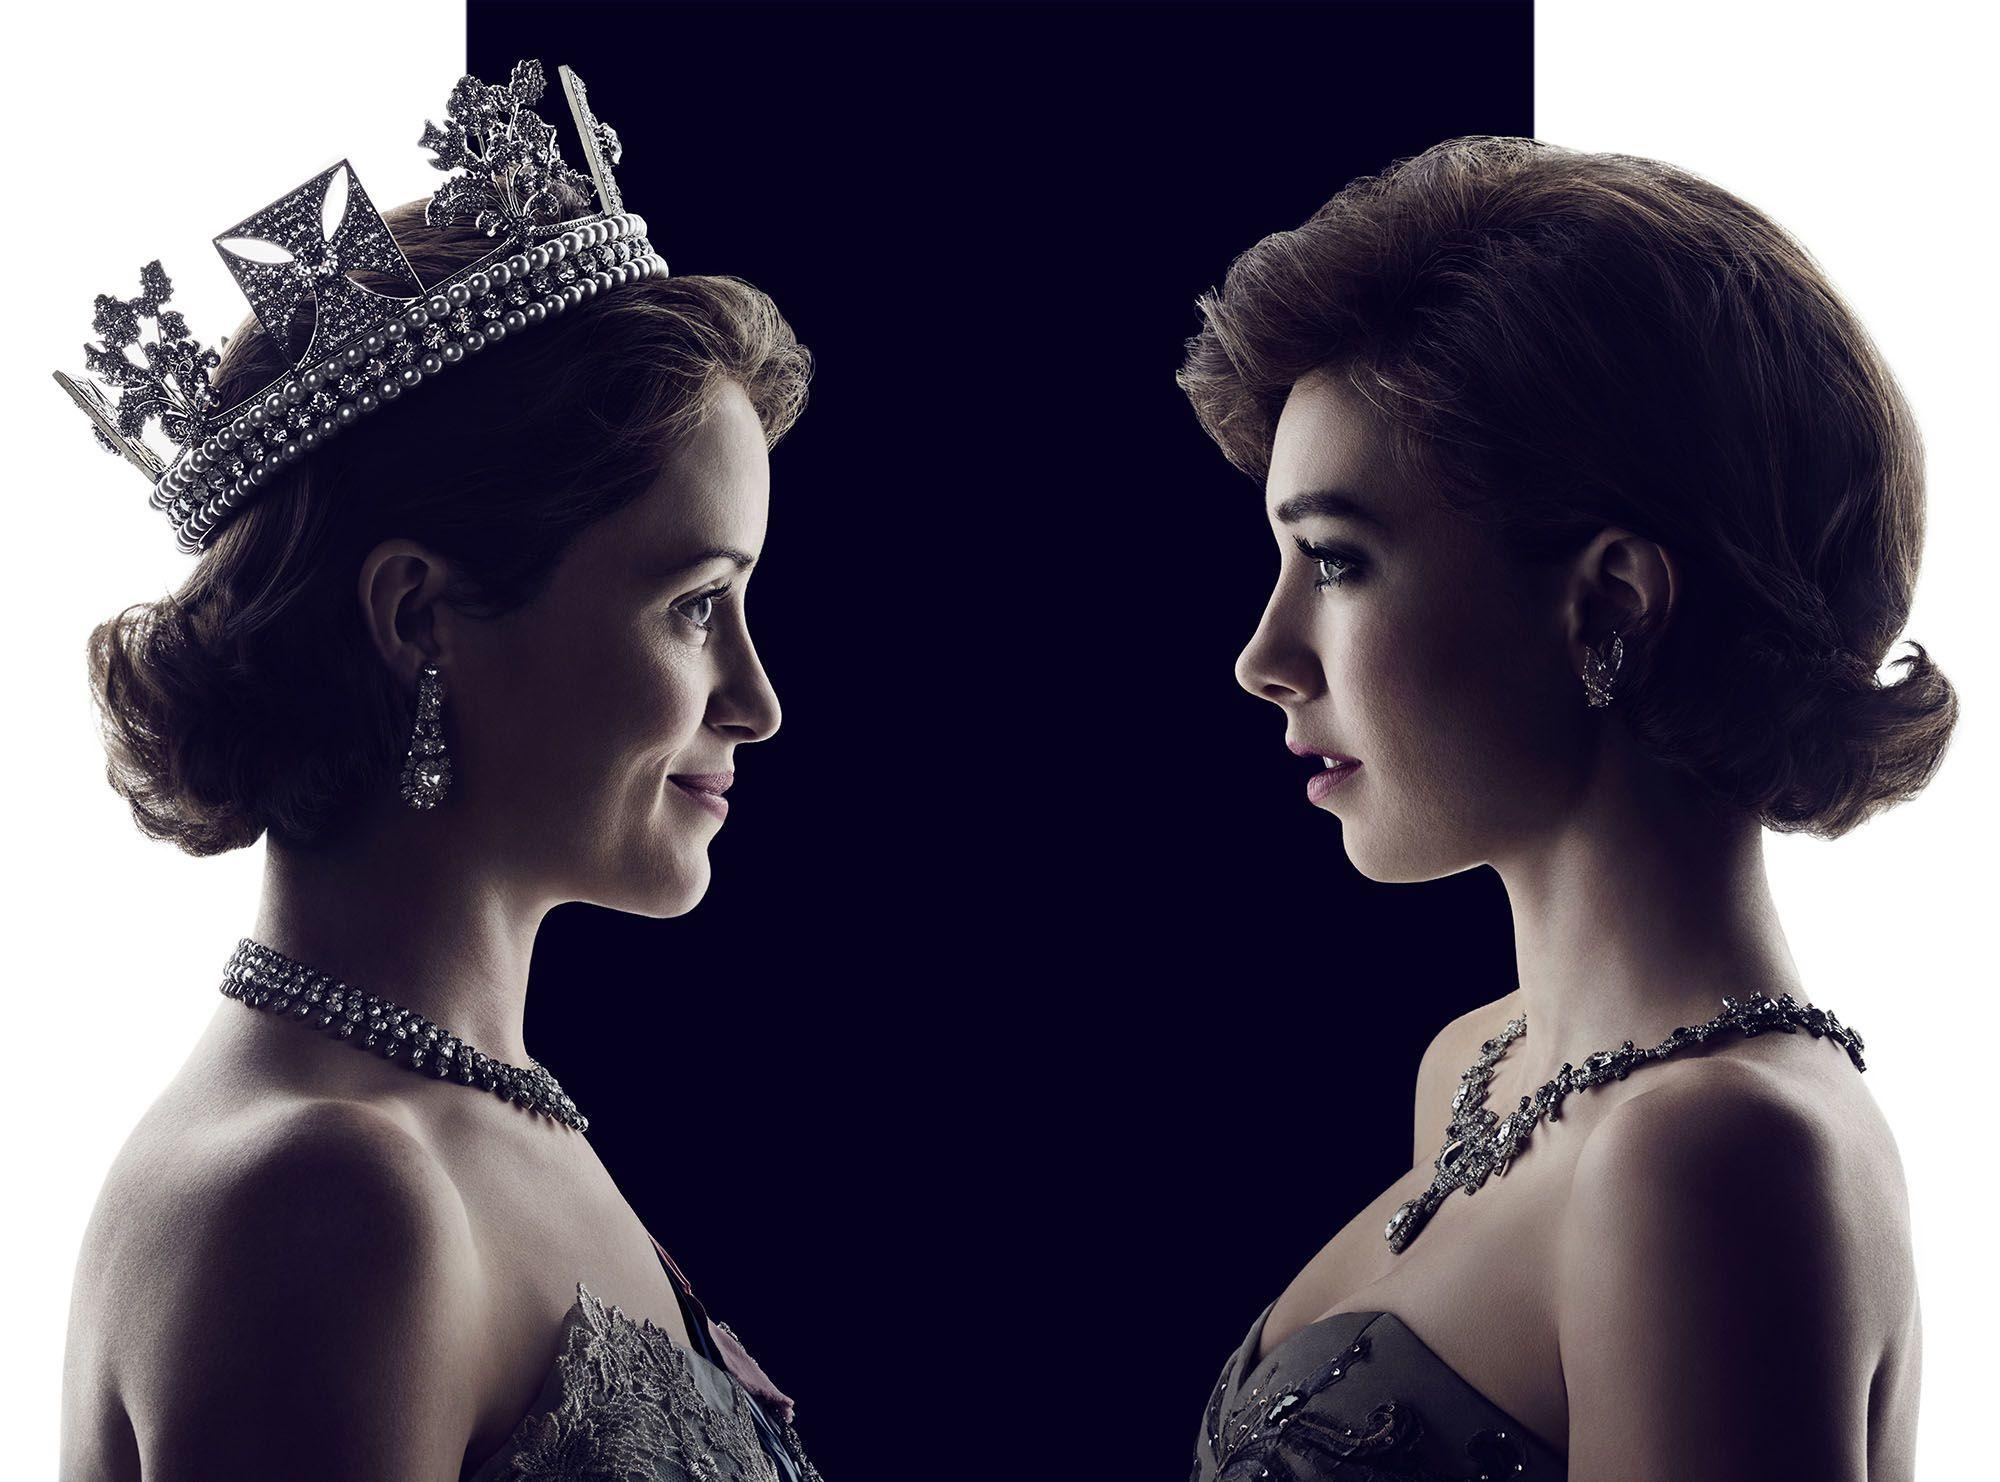 52 The Crown HD Wallpapers